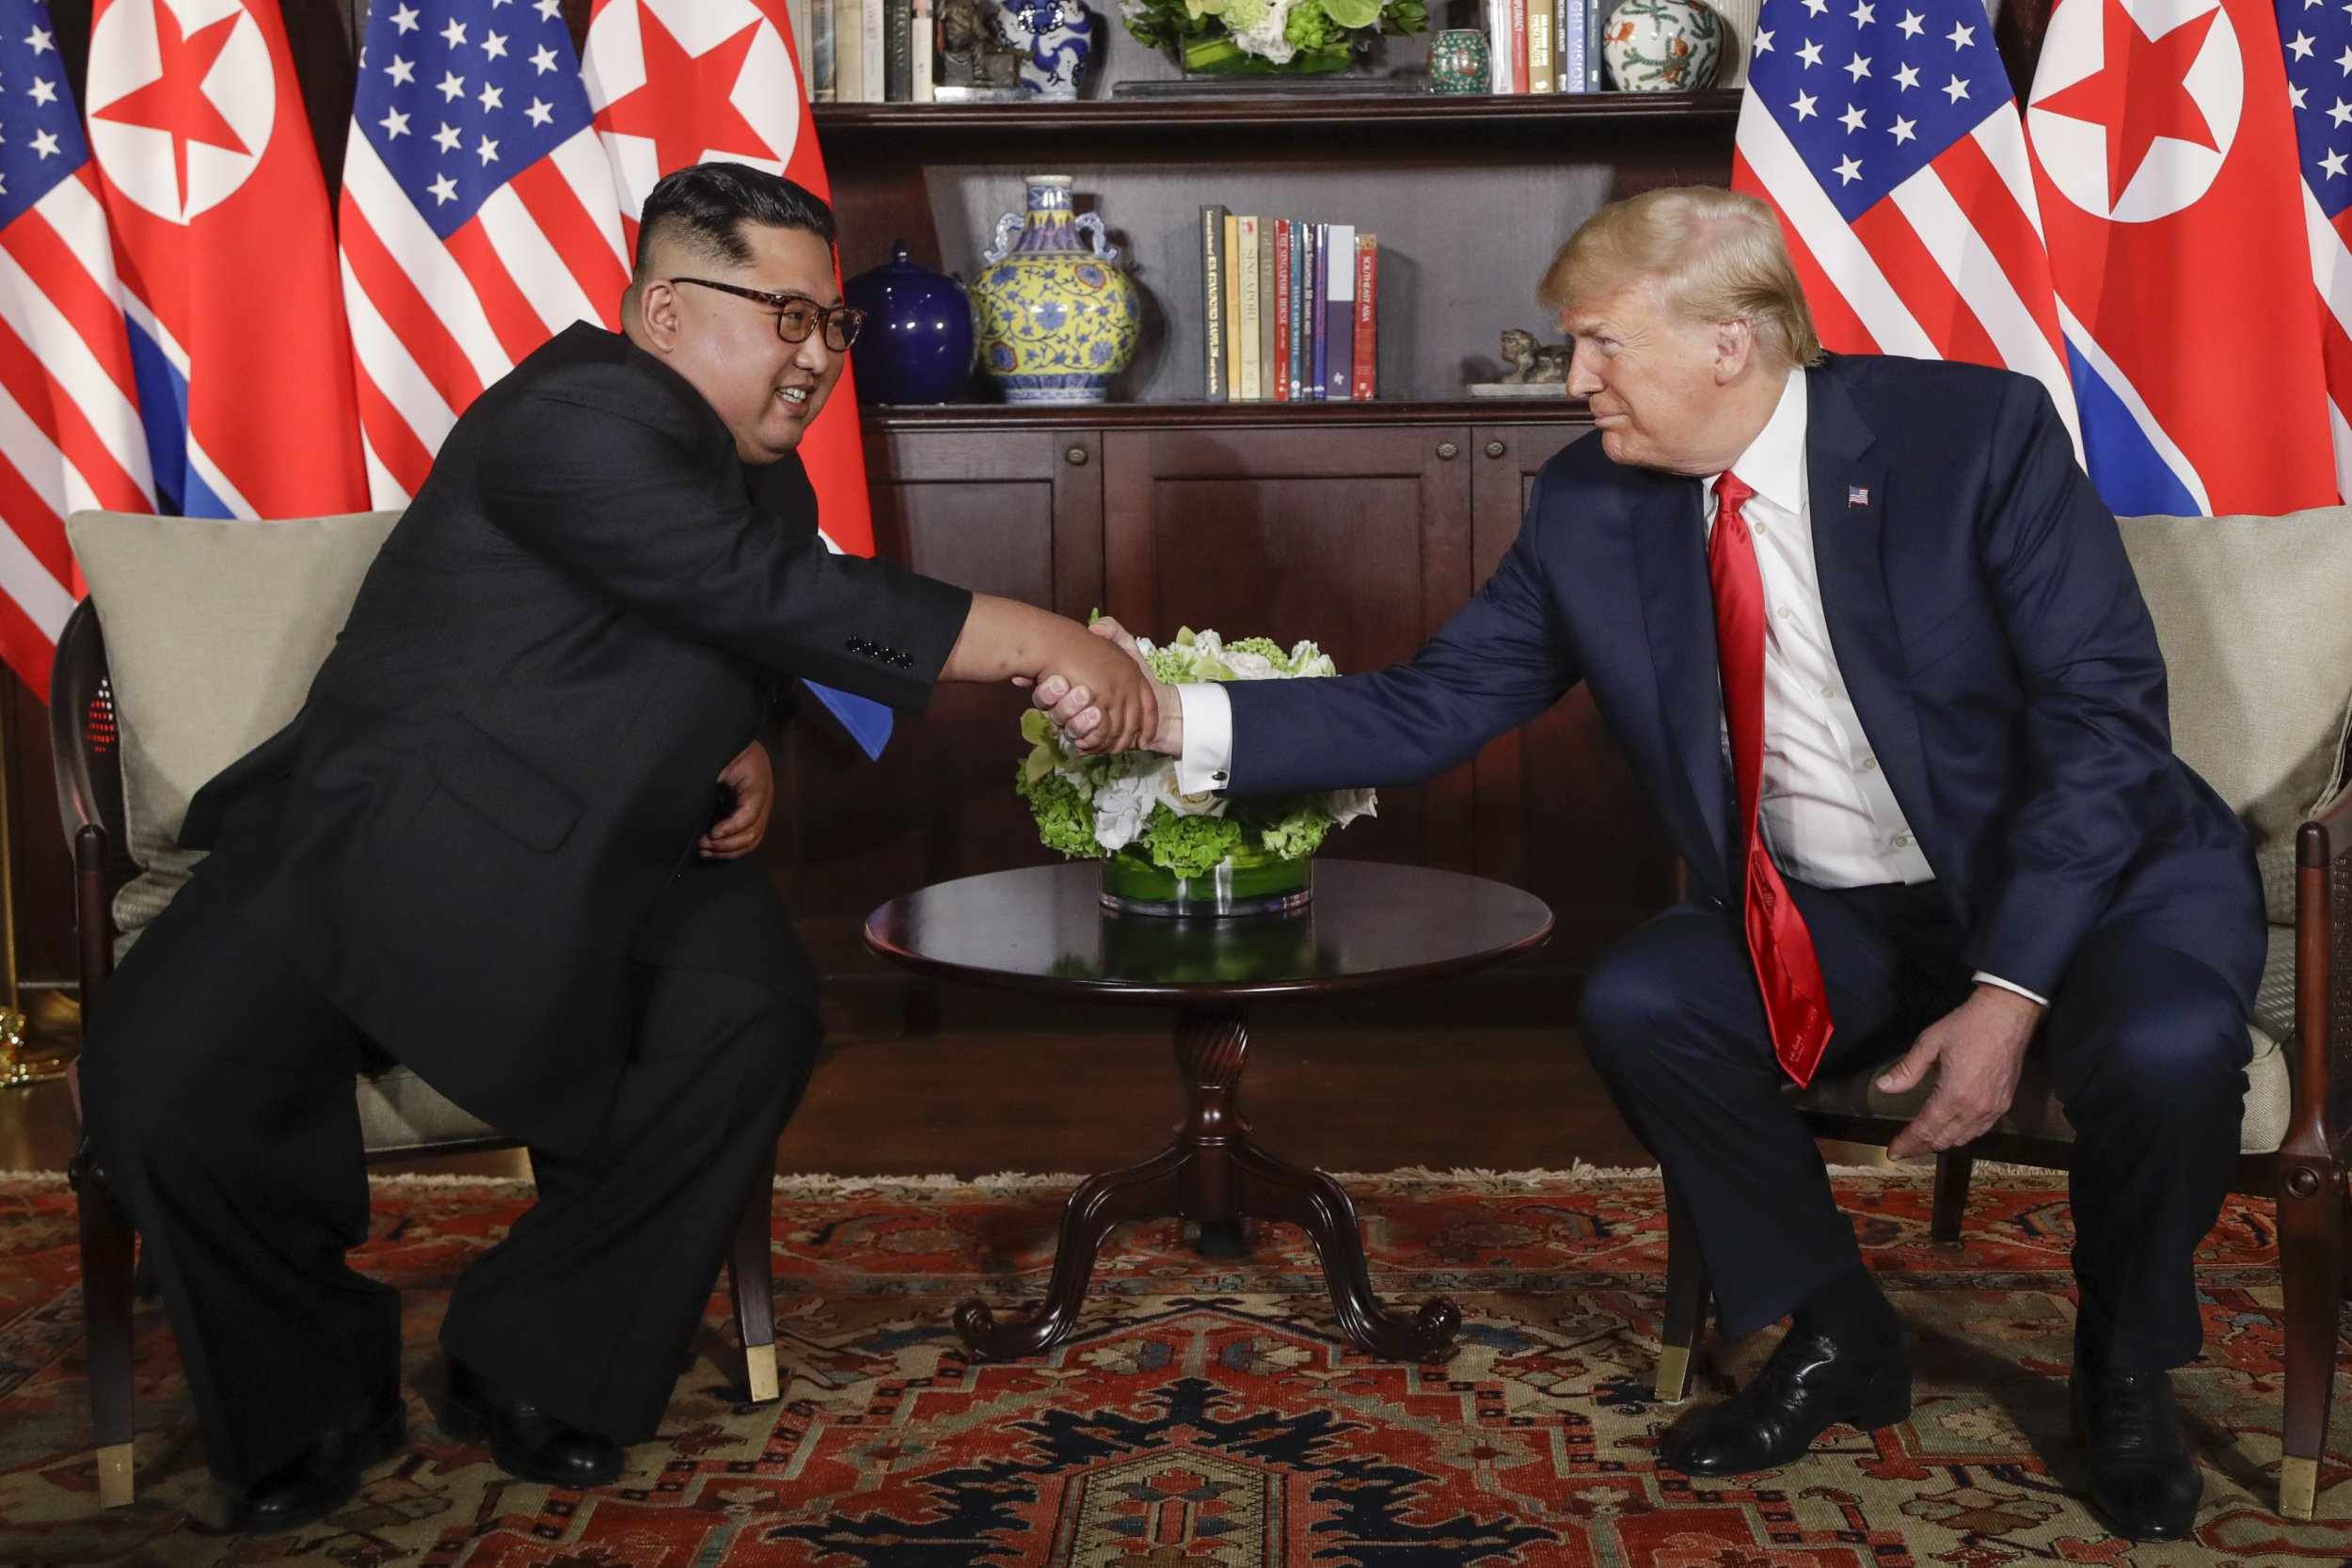 U. S. President Donald Trump shakes hands with North Korea leader Kim Jong Un during their first meetings at the Capella resort on Sentosa Island Tuesday, June 12, 2018 in Singapore. (AP Photo/Evan Vucci)